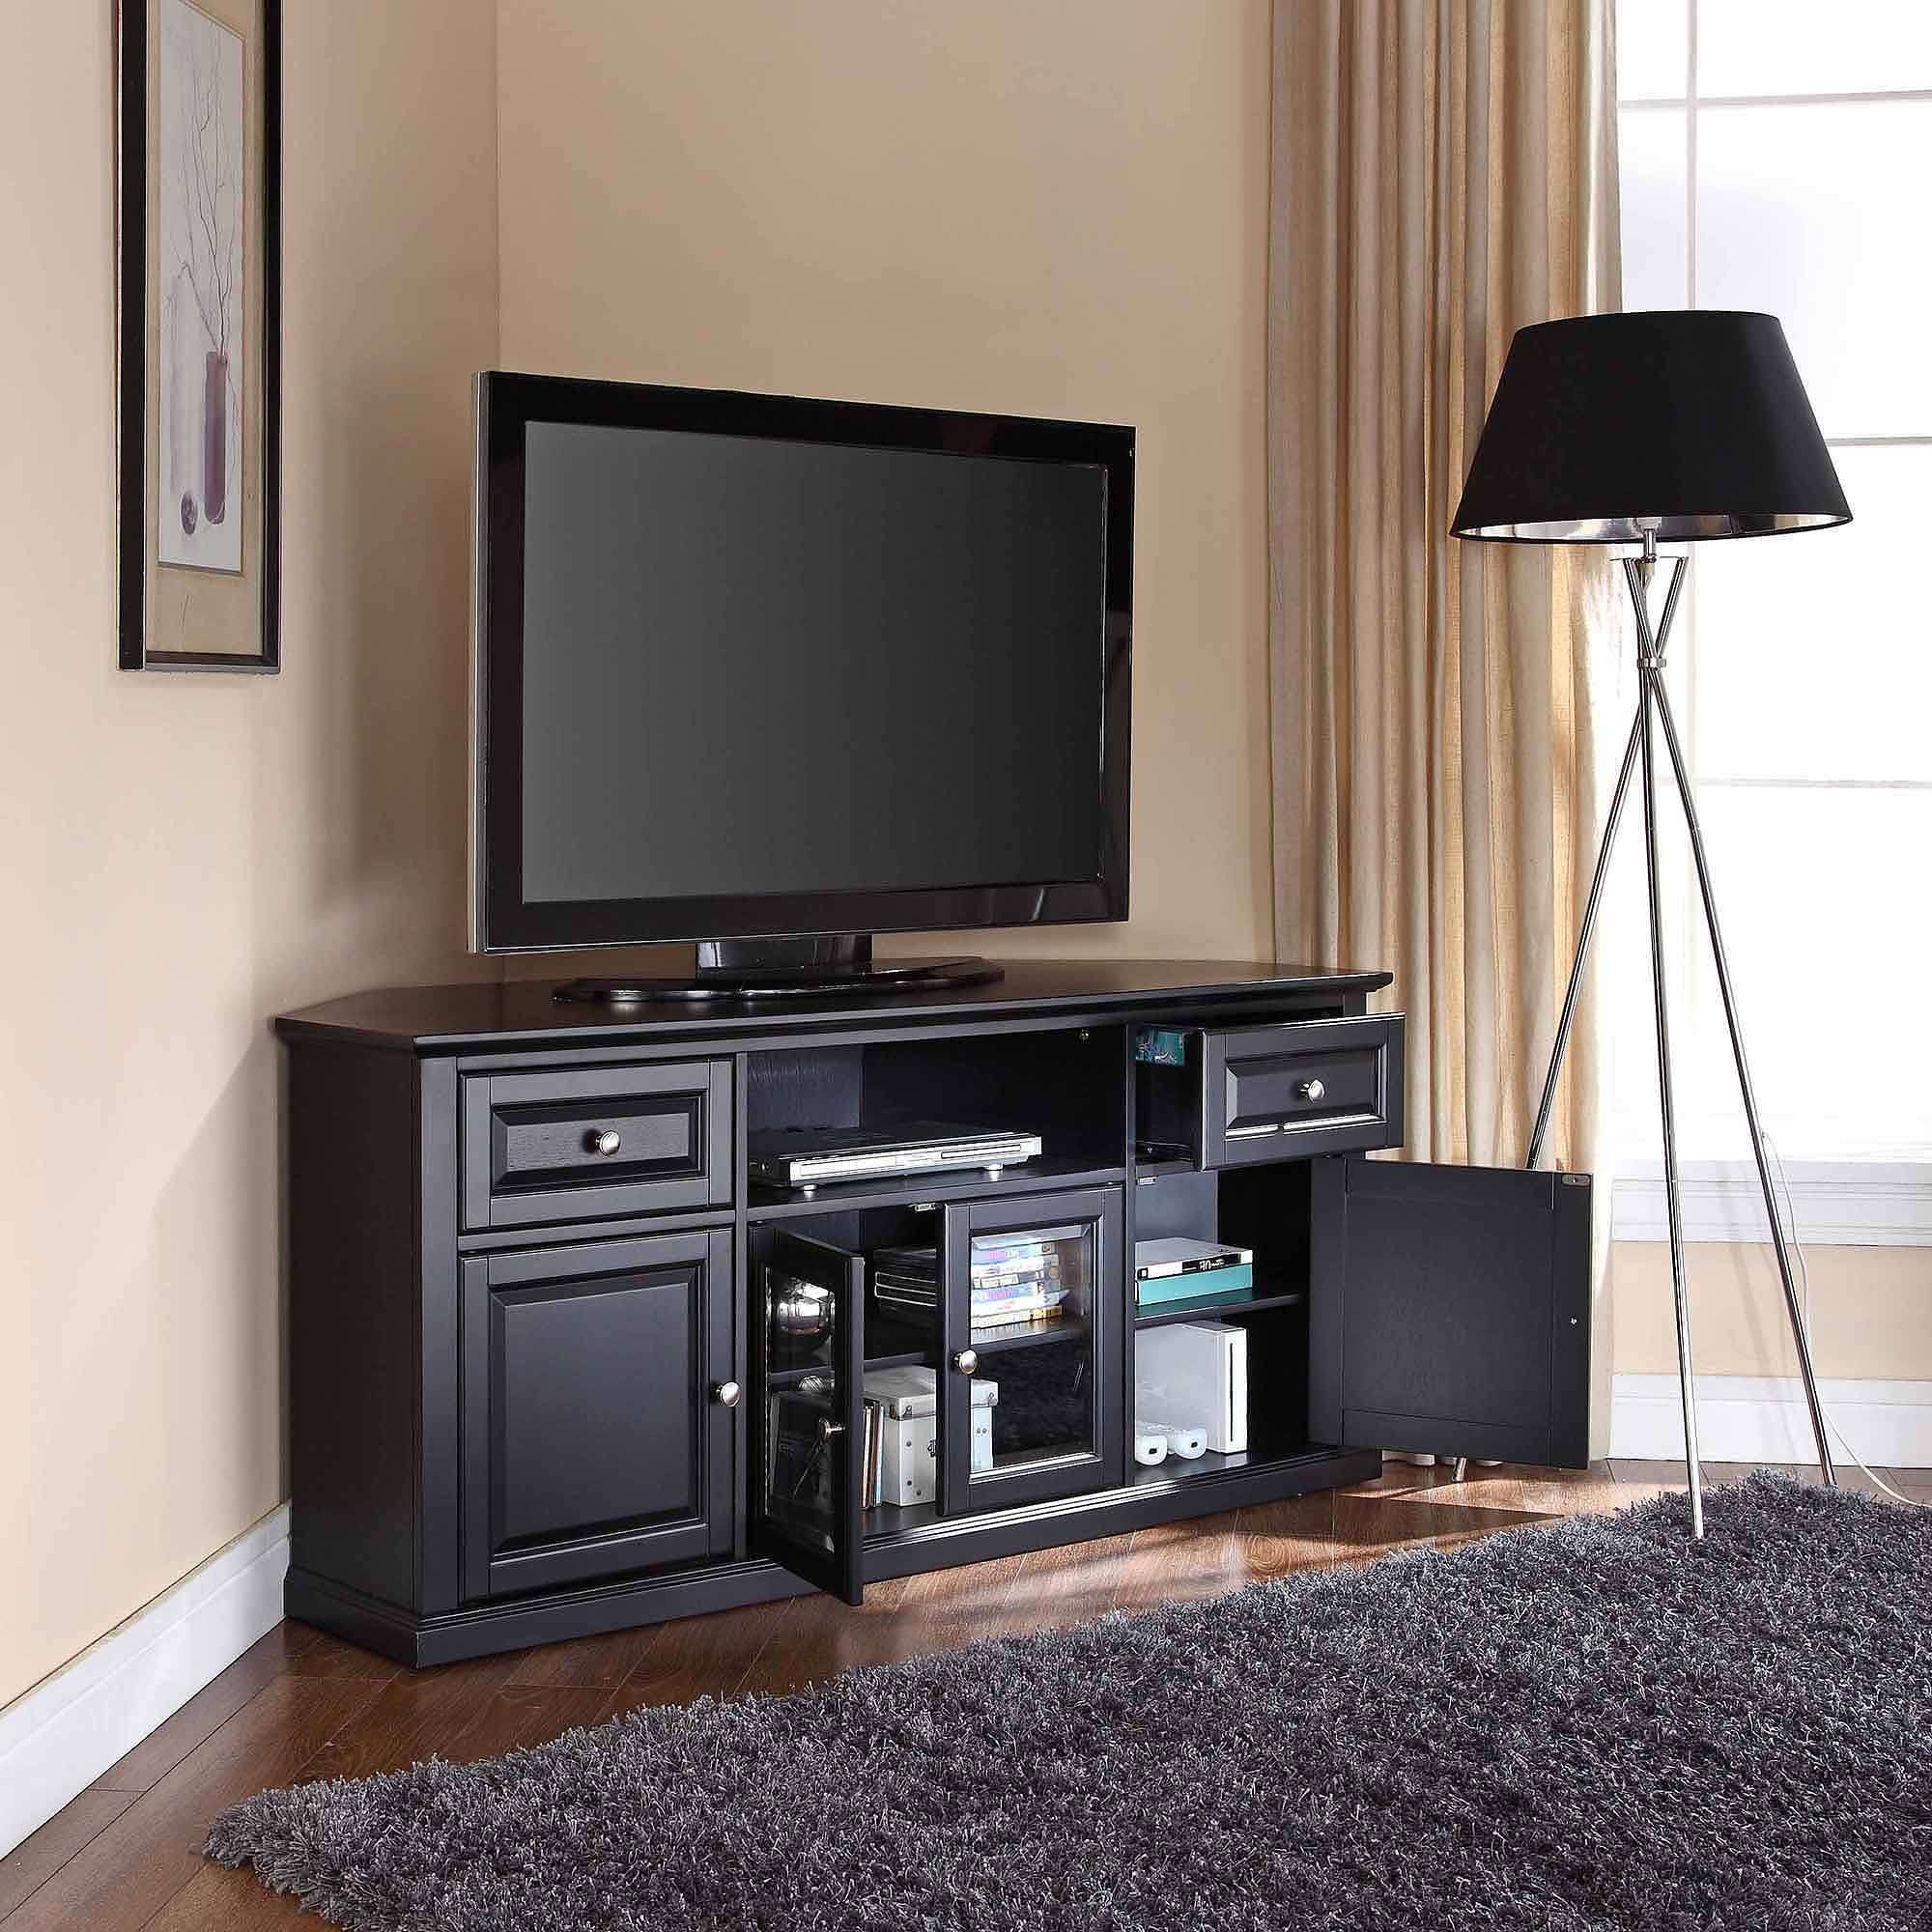 "Crosley Furniture Corner Tv Stand For Tvs Up To 60"" – Walmart With Corner Tv Stands With Drawers (View 9 of 15)"